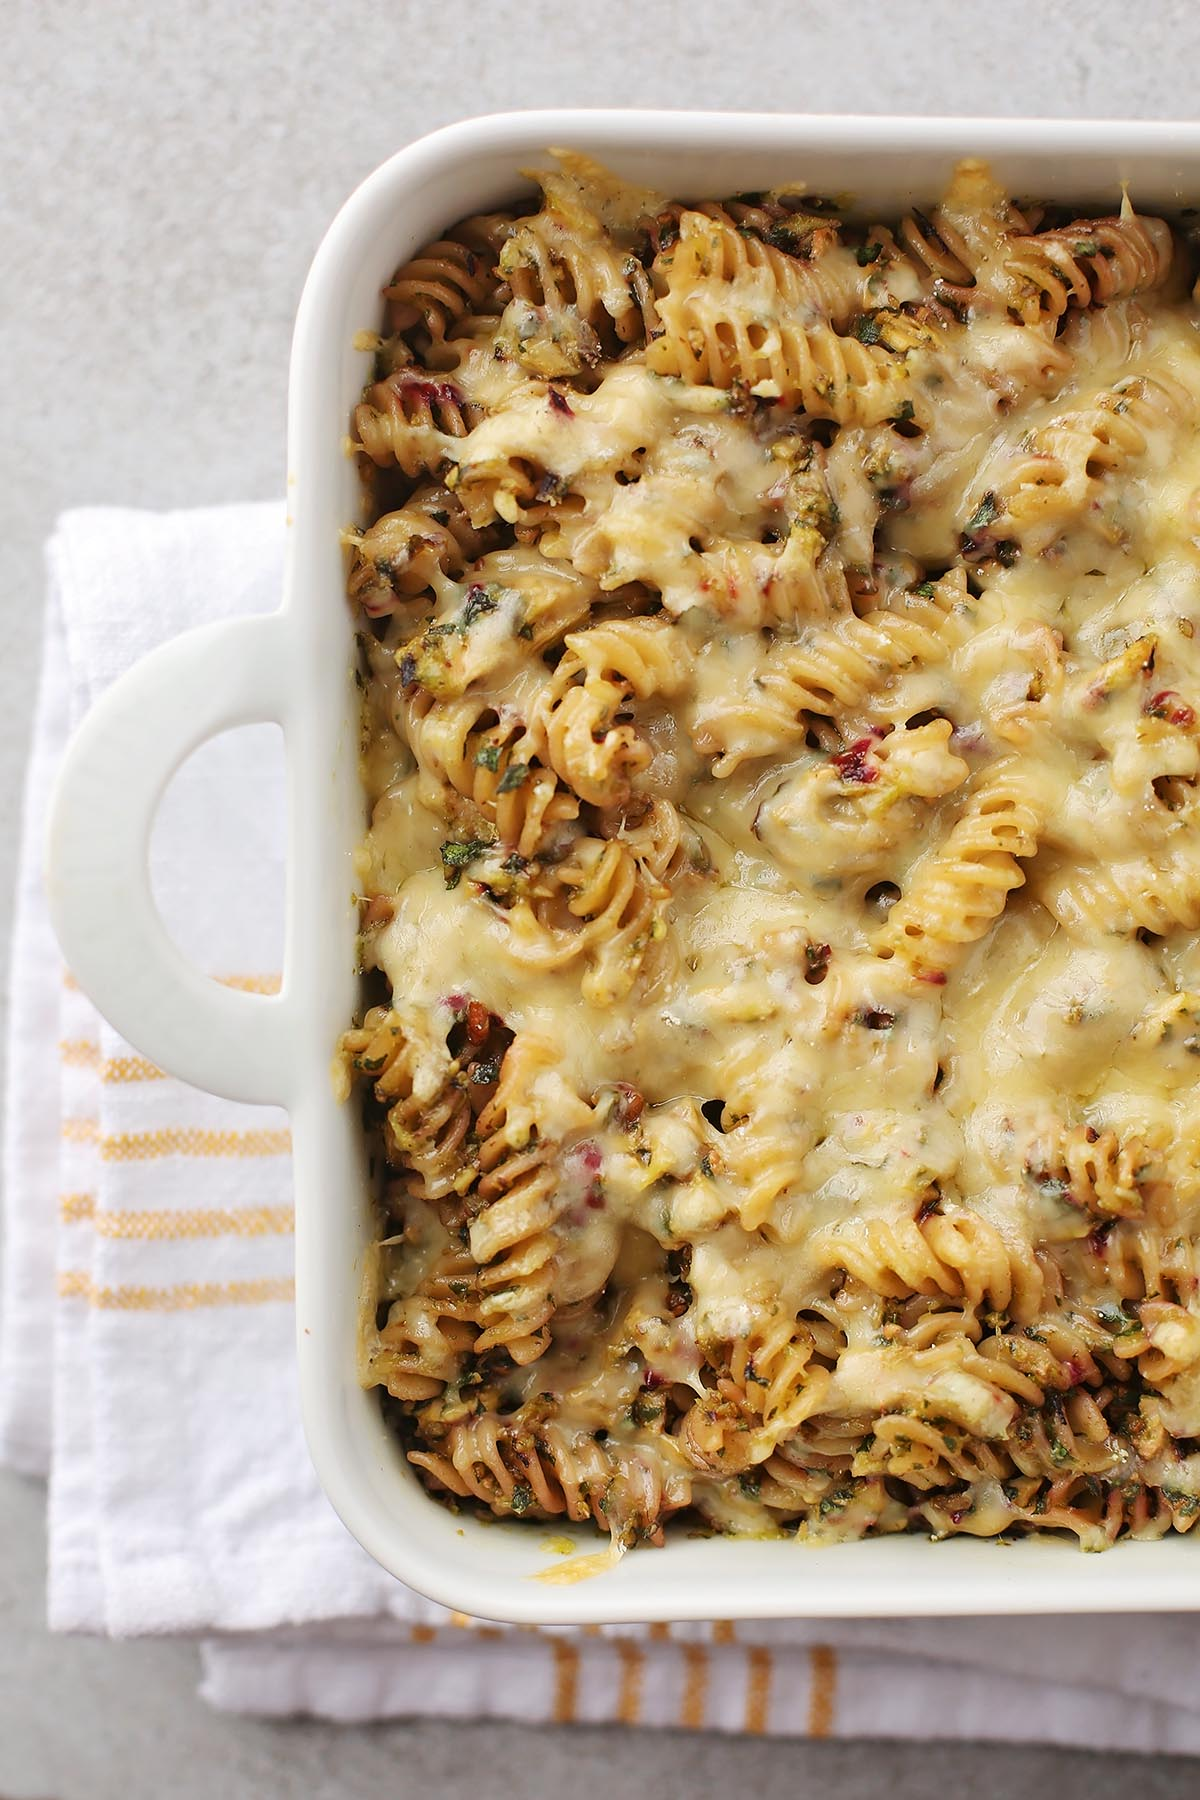 close up shot of cheesy casserole in a white baking dish